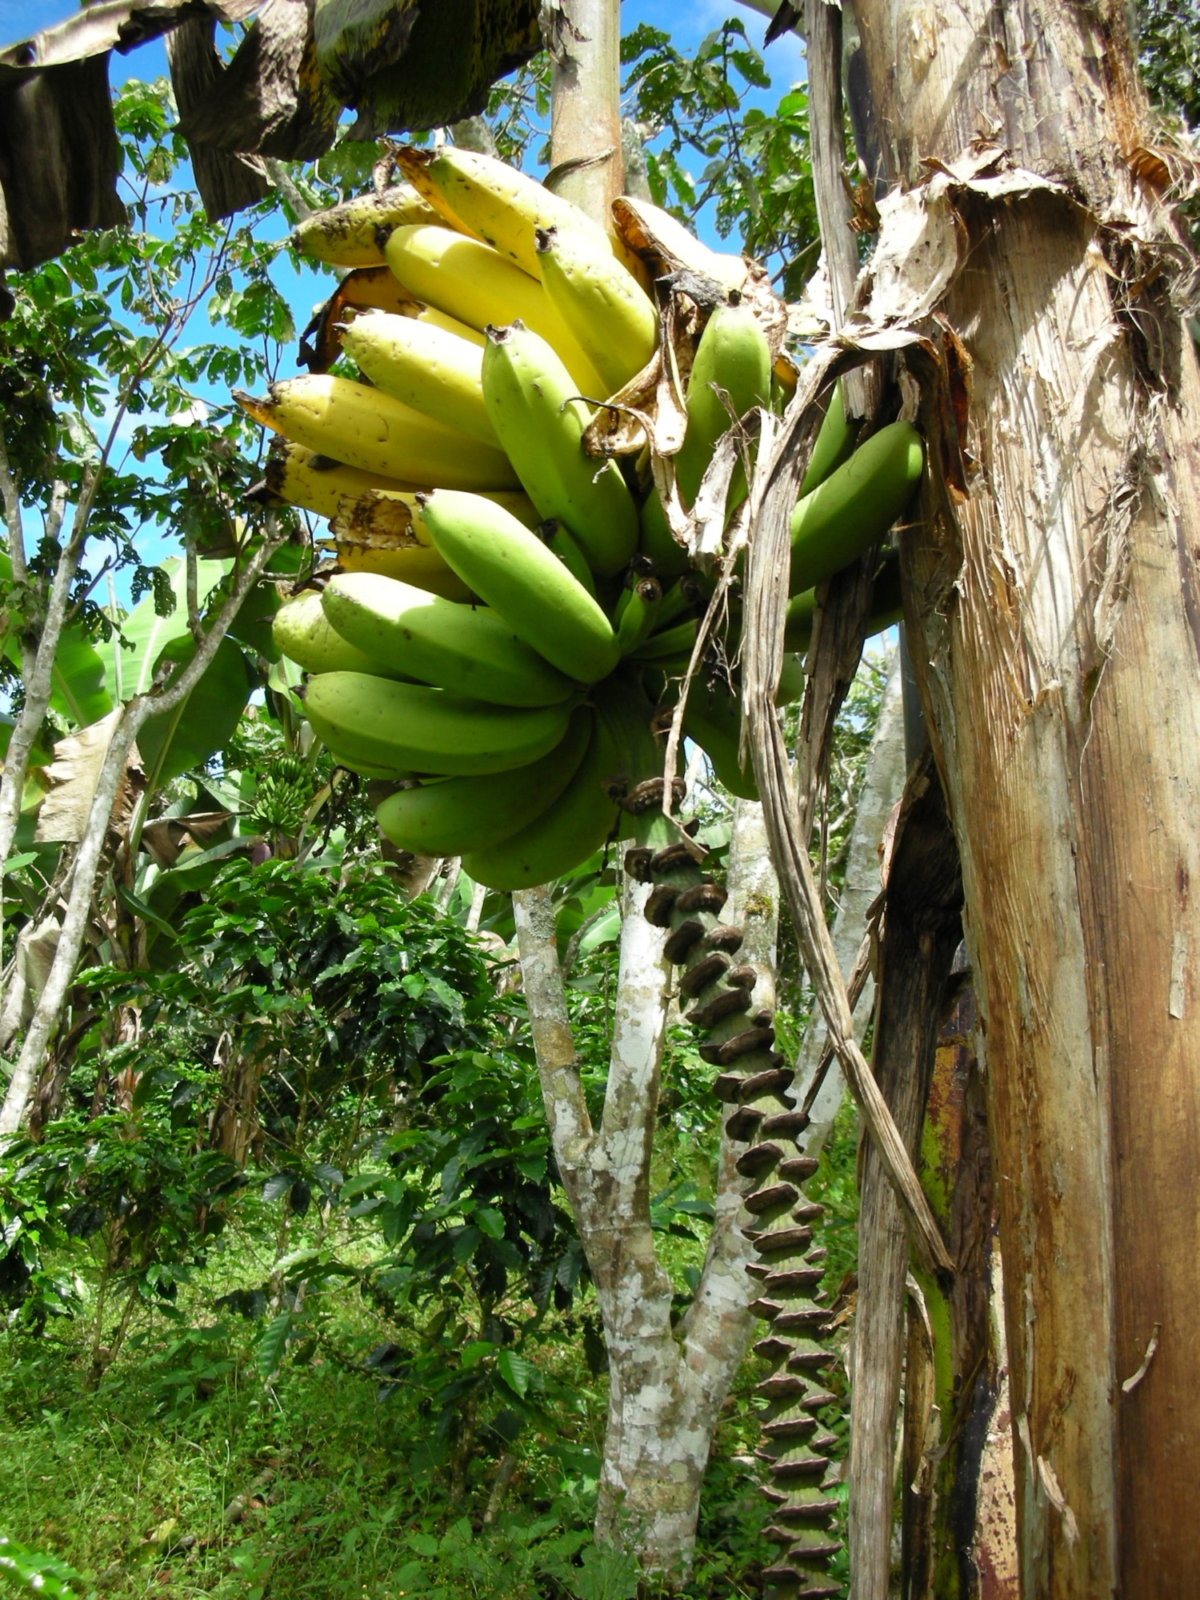 The U.S. consumes more bananas than any other fruit.